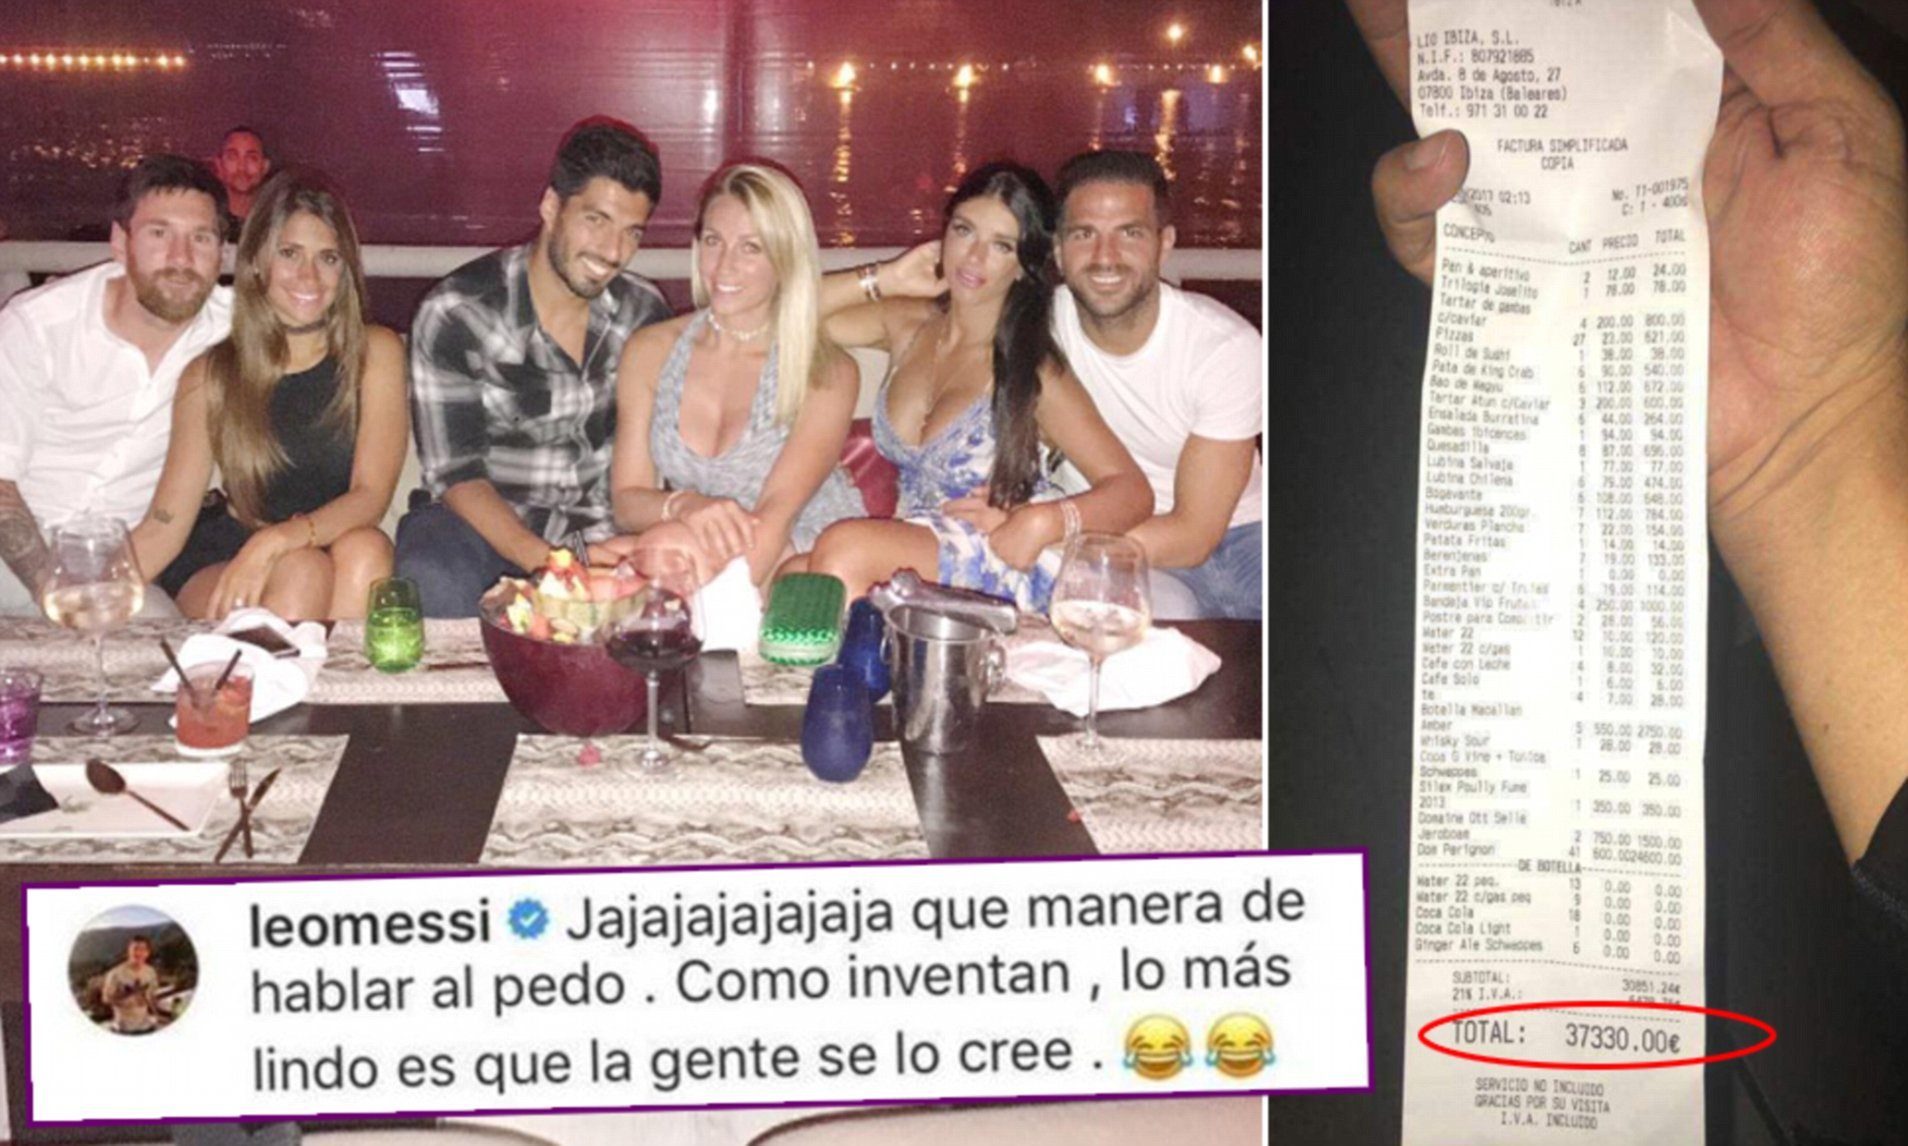 Lionel messi no gif by adidas. Lionel Messi Responds To Photo Of 33 000 Ibiza Bar Bill Daily Mail Online